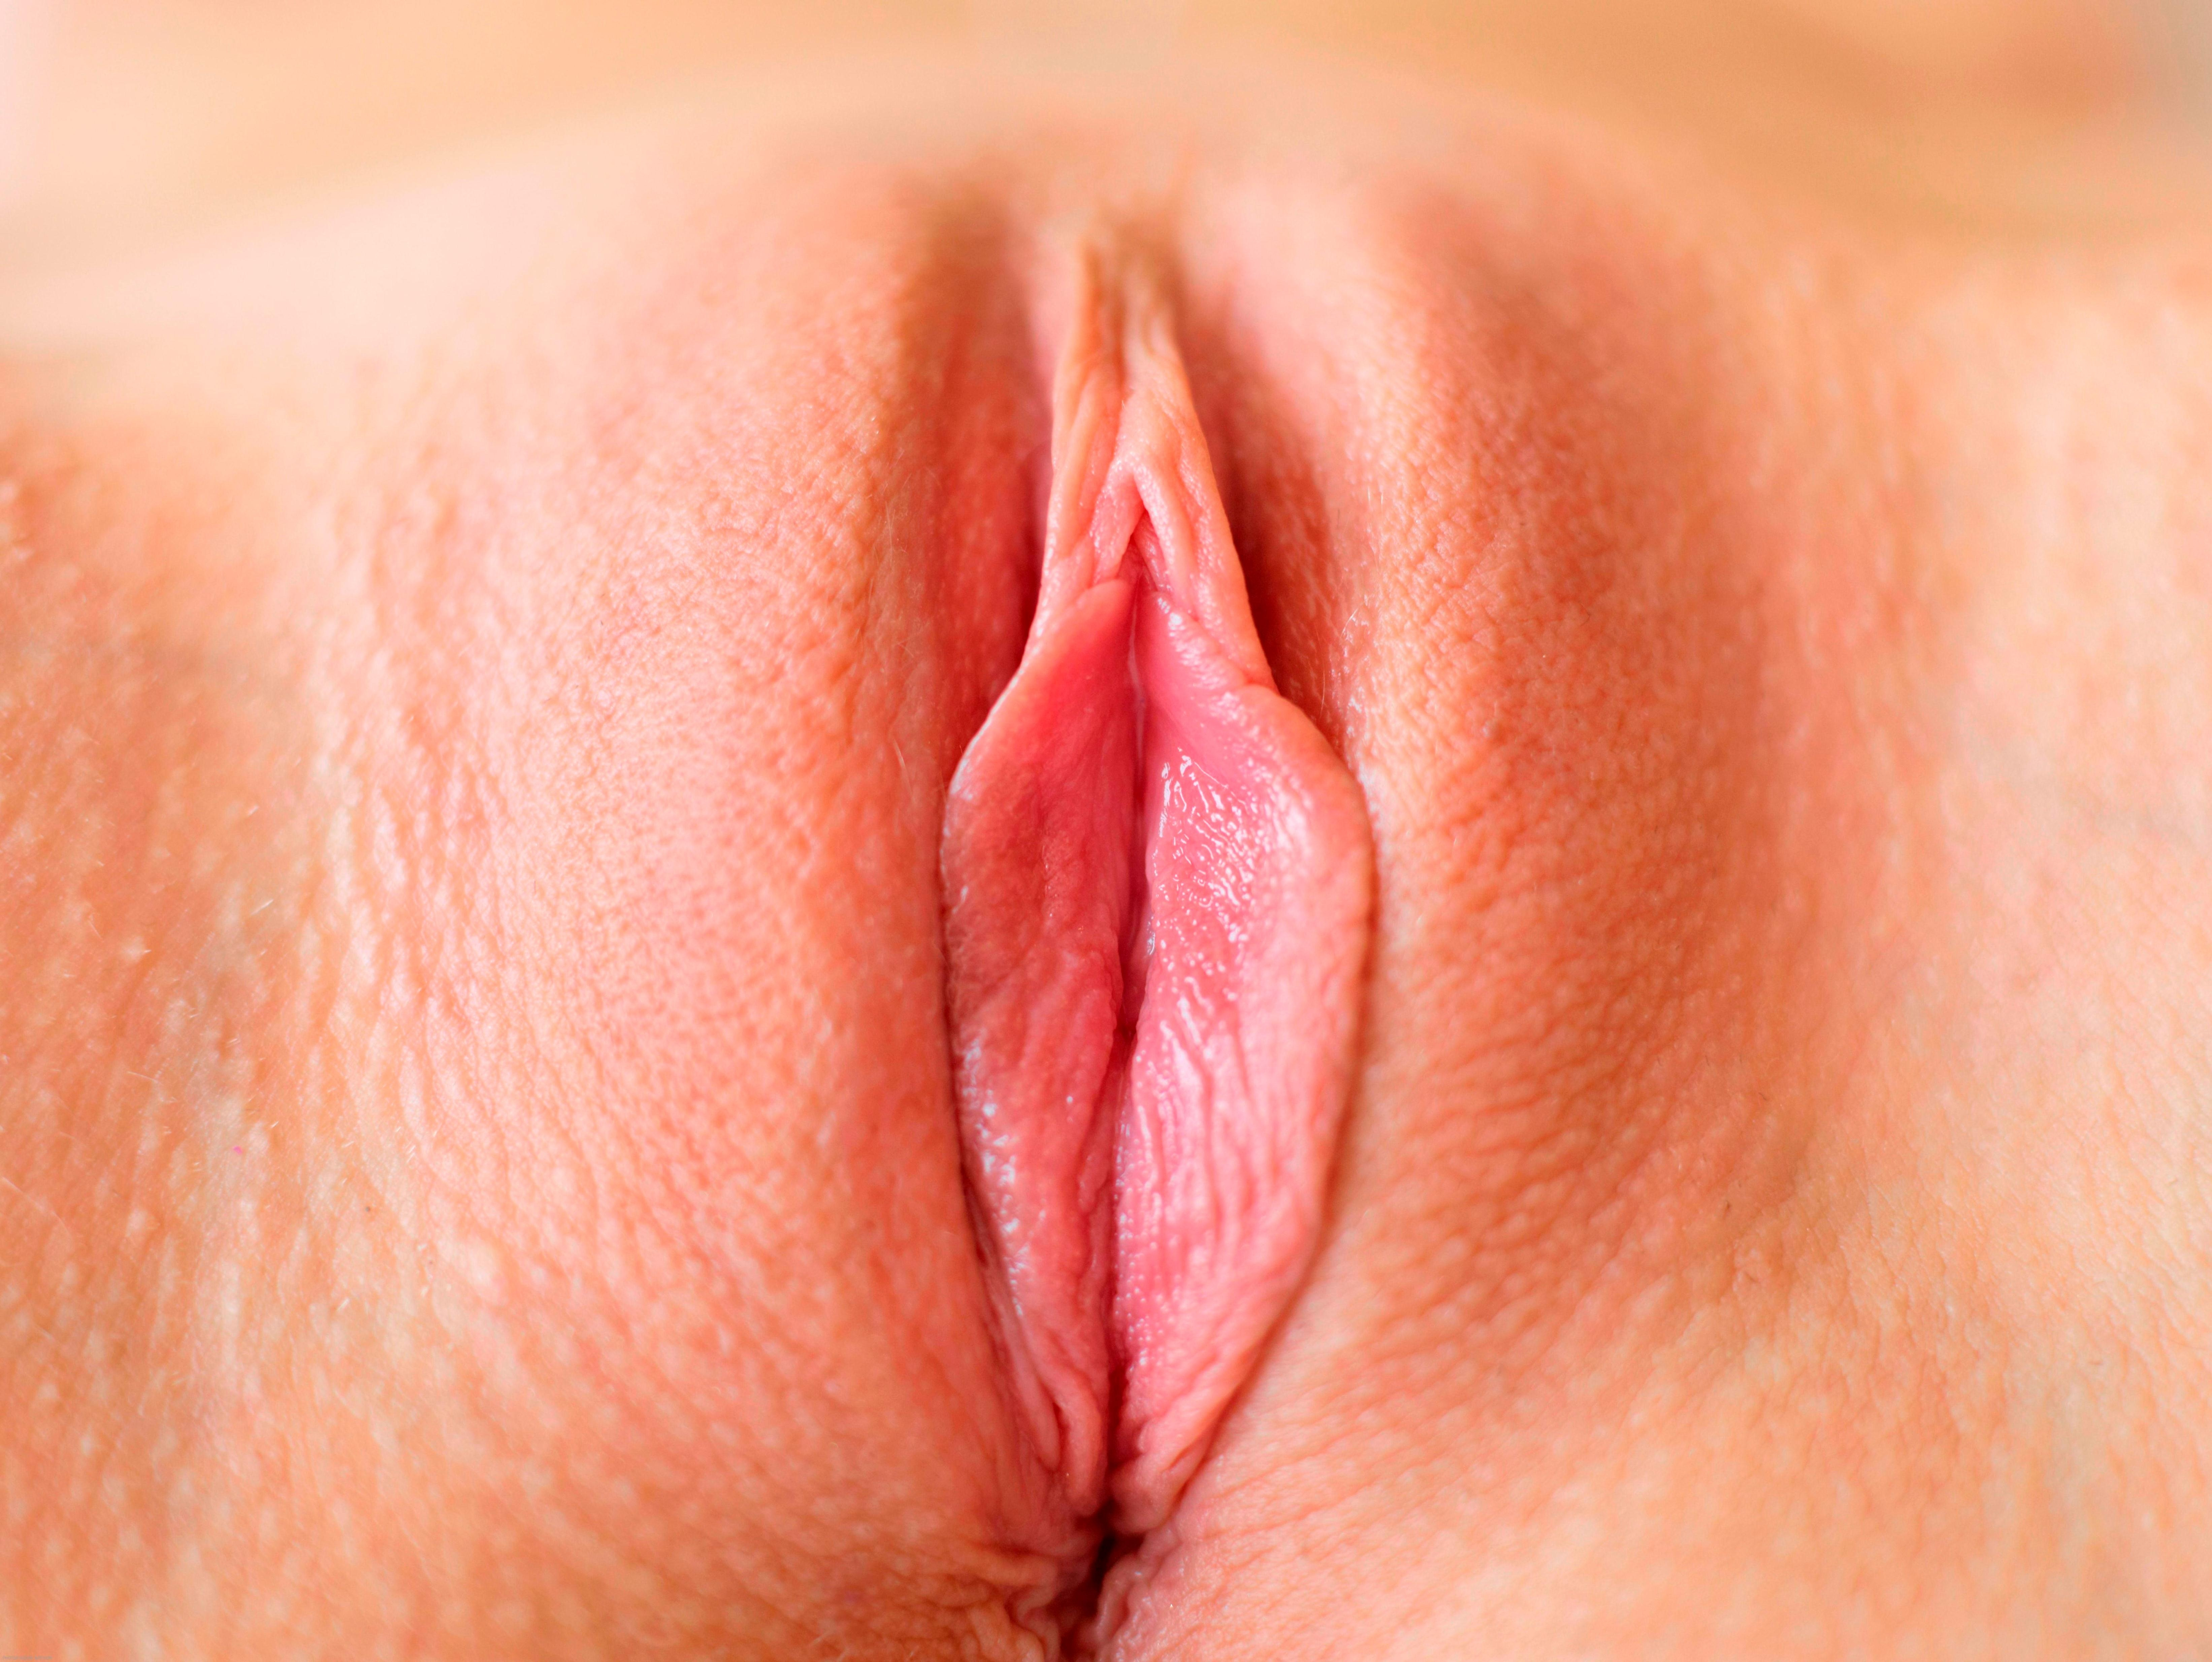 Pictures of porno vaginas, top less strippers